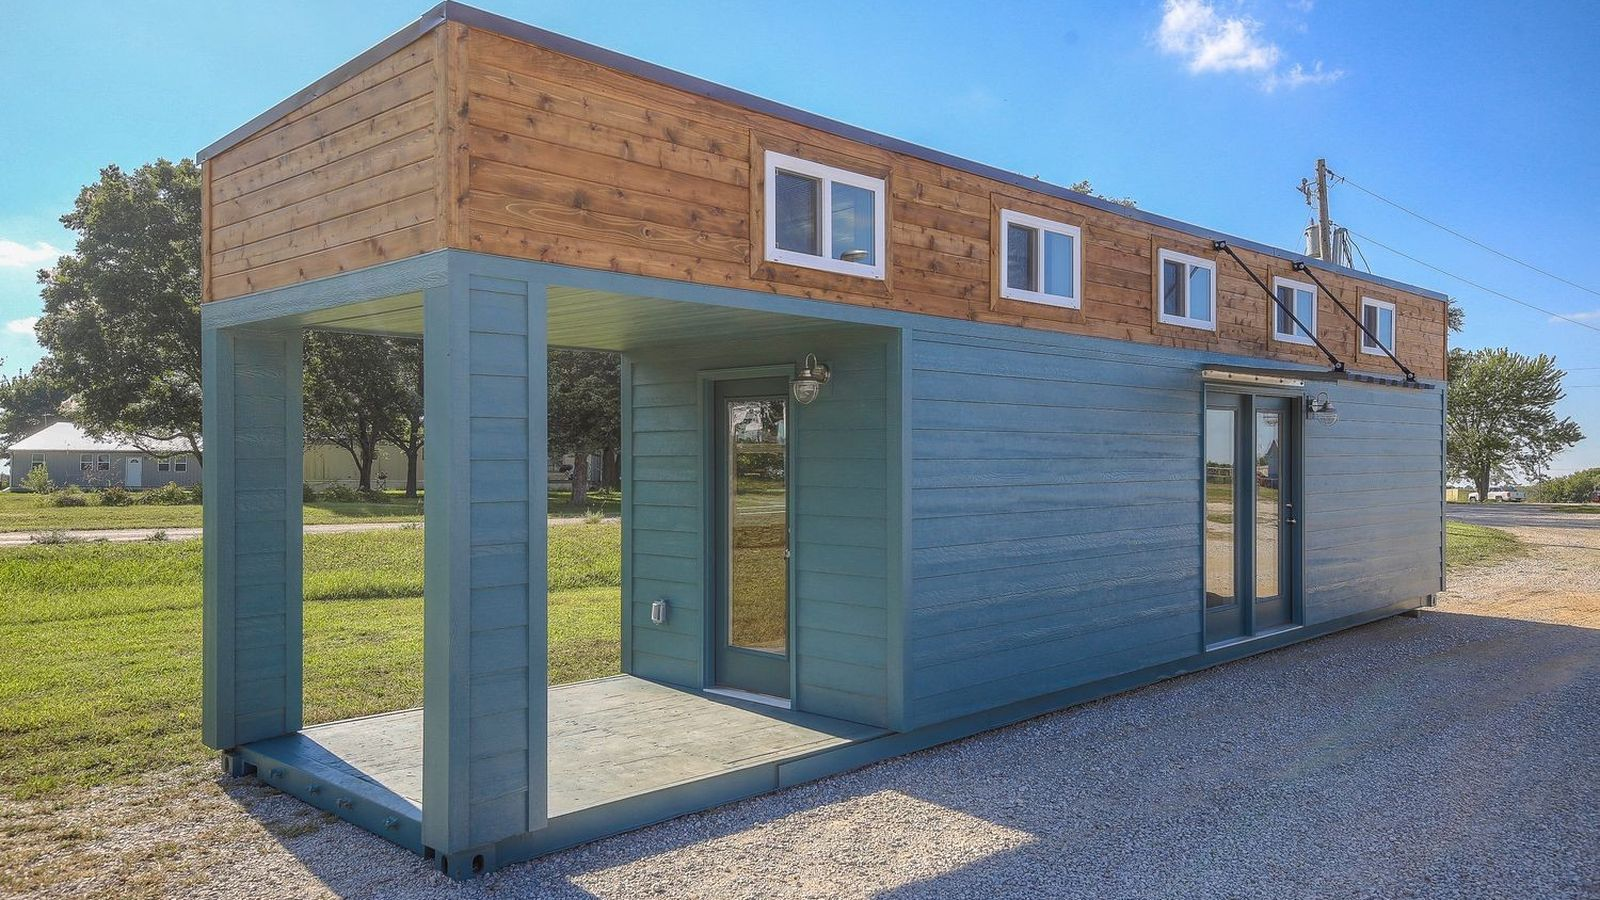 Best Kitchen Gallery: Slick Tiny House Converted From A 40 Foot Shipping Container Tiny of Homes From Containers on rachelxblog.com